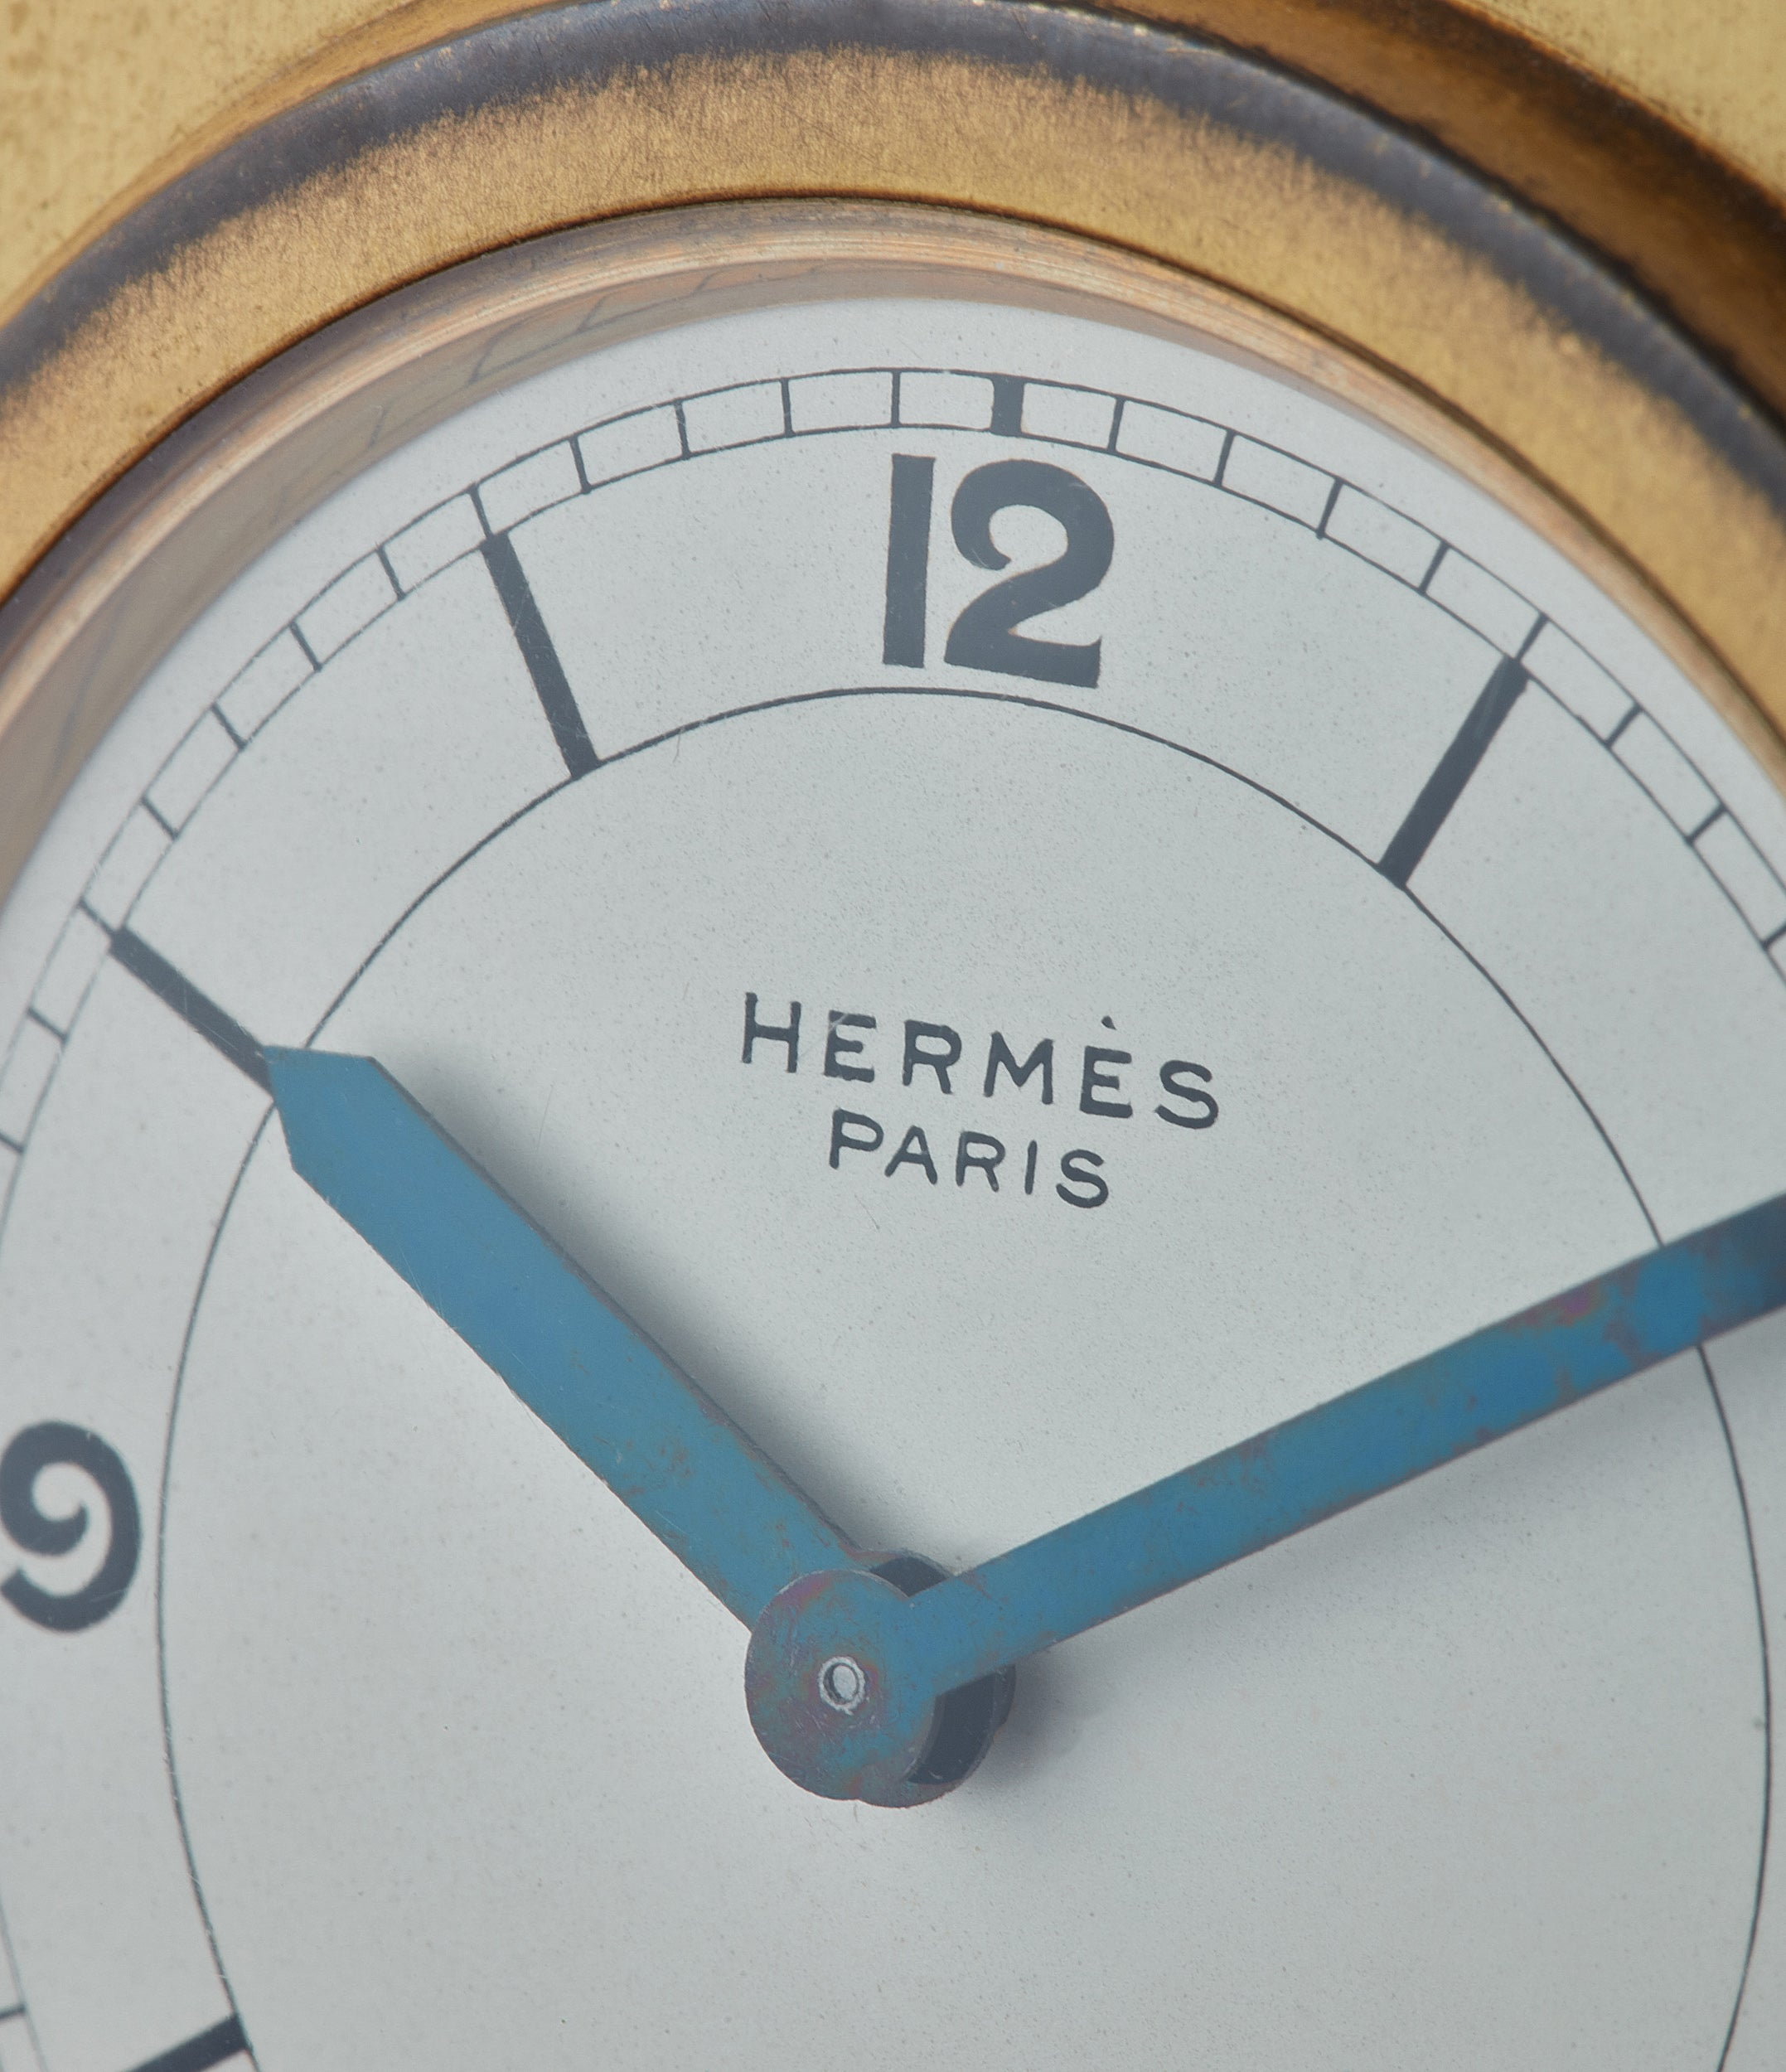 Hermes Paris-signed clock Compendium 8-day Art Deco brass calendar for sale online at A Collected Man for collectors of rare objects